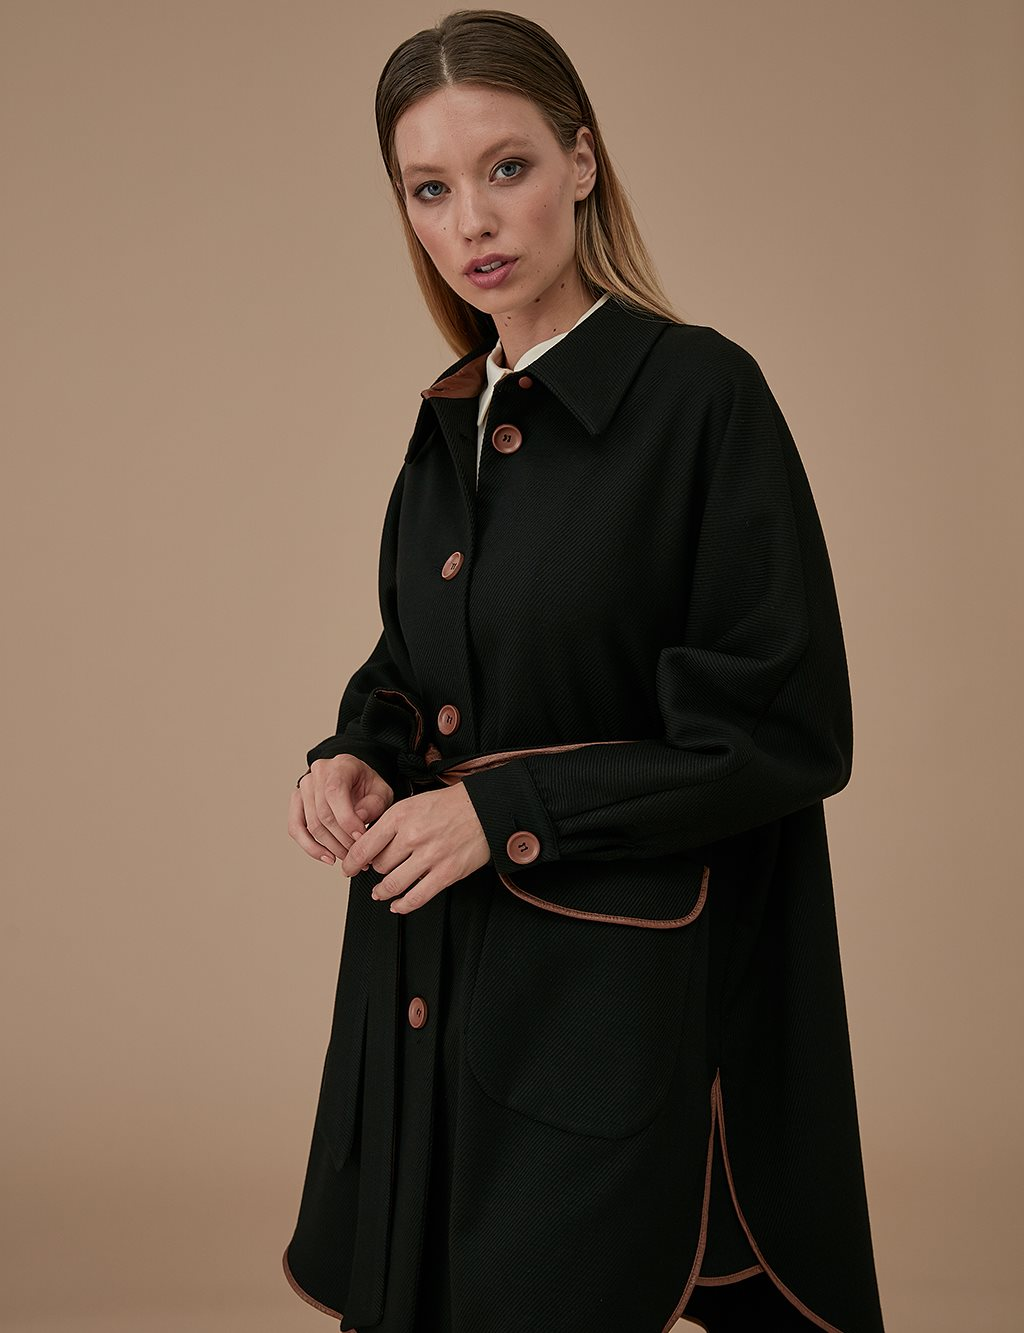 Sleeve Detailed Poncho/Coat A9 17032 Black